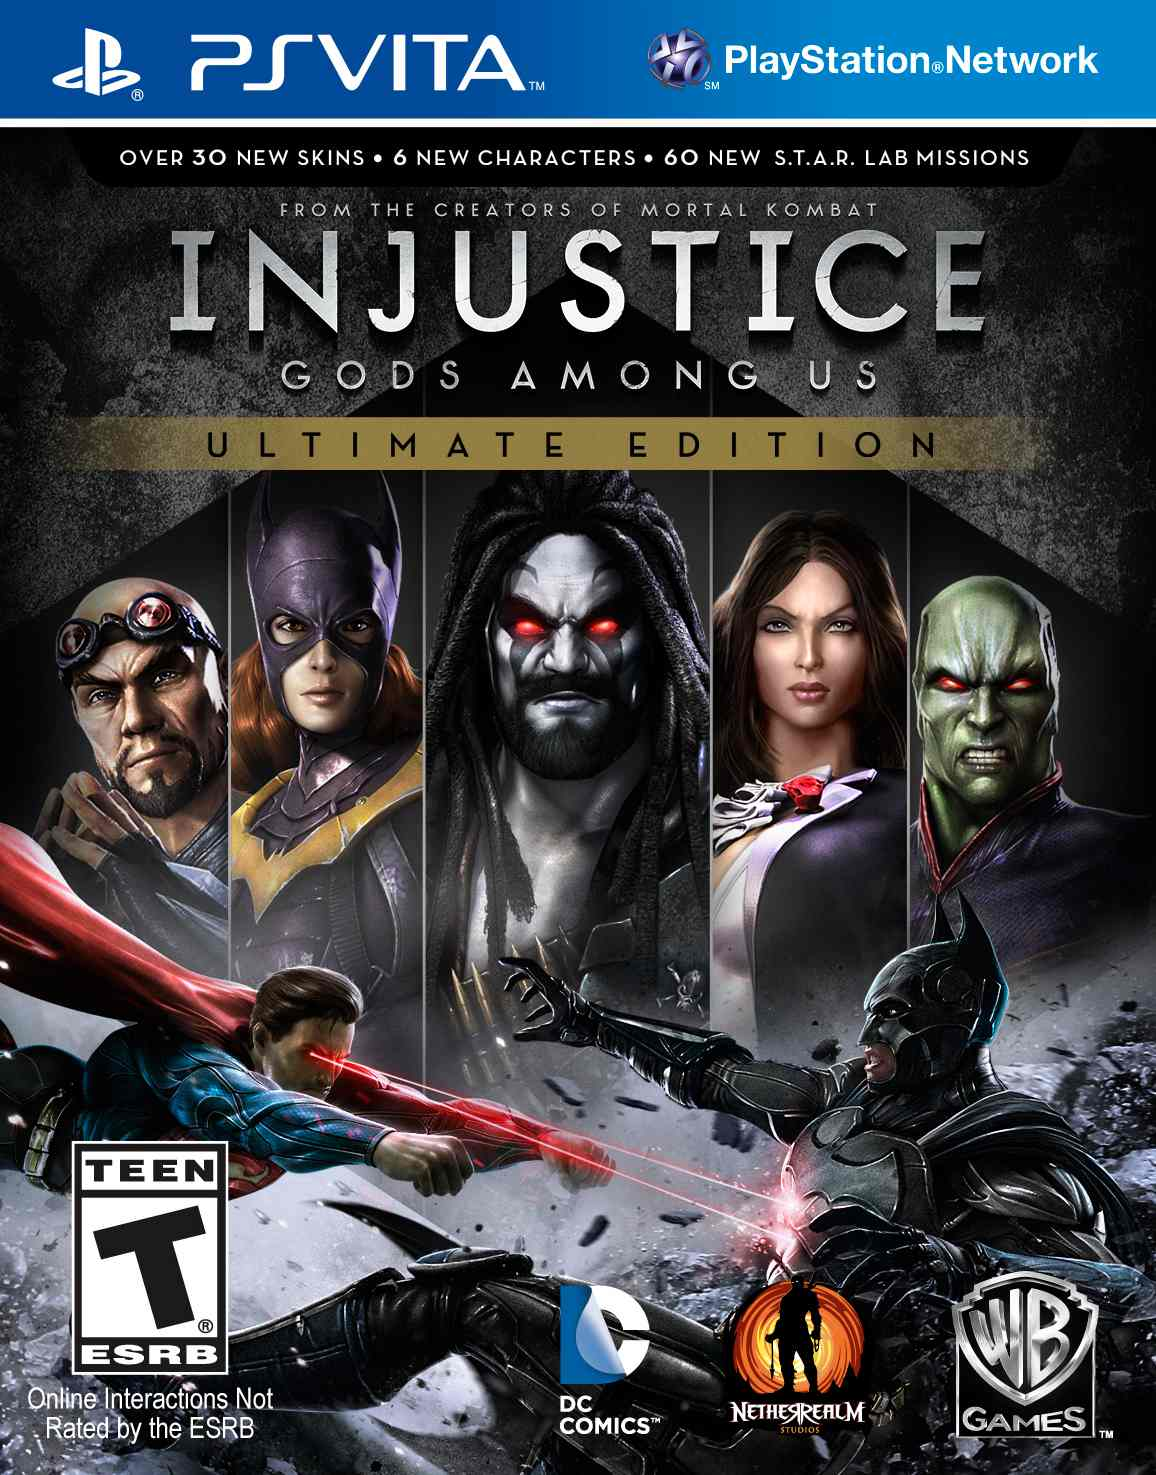 Ver Injustice Gods Among Us Ultimate Edition Psvita